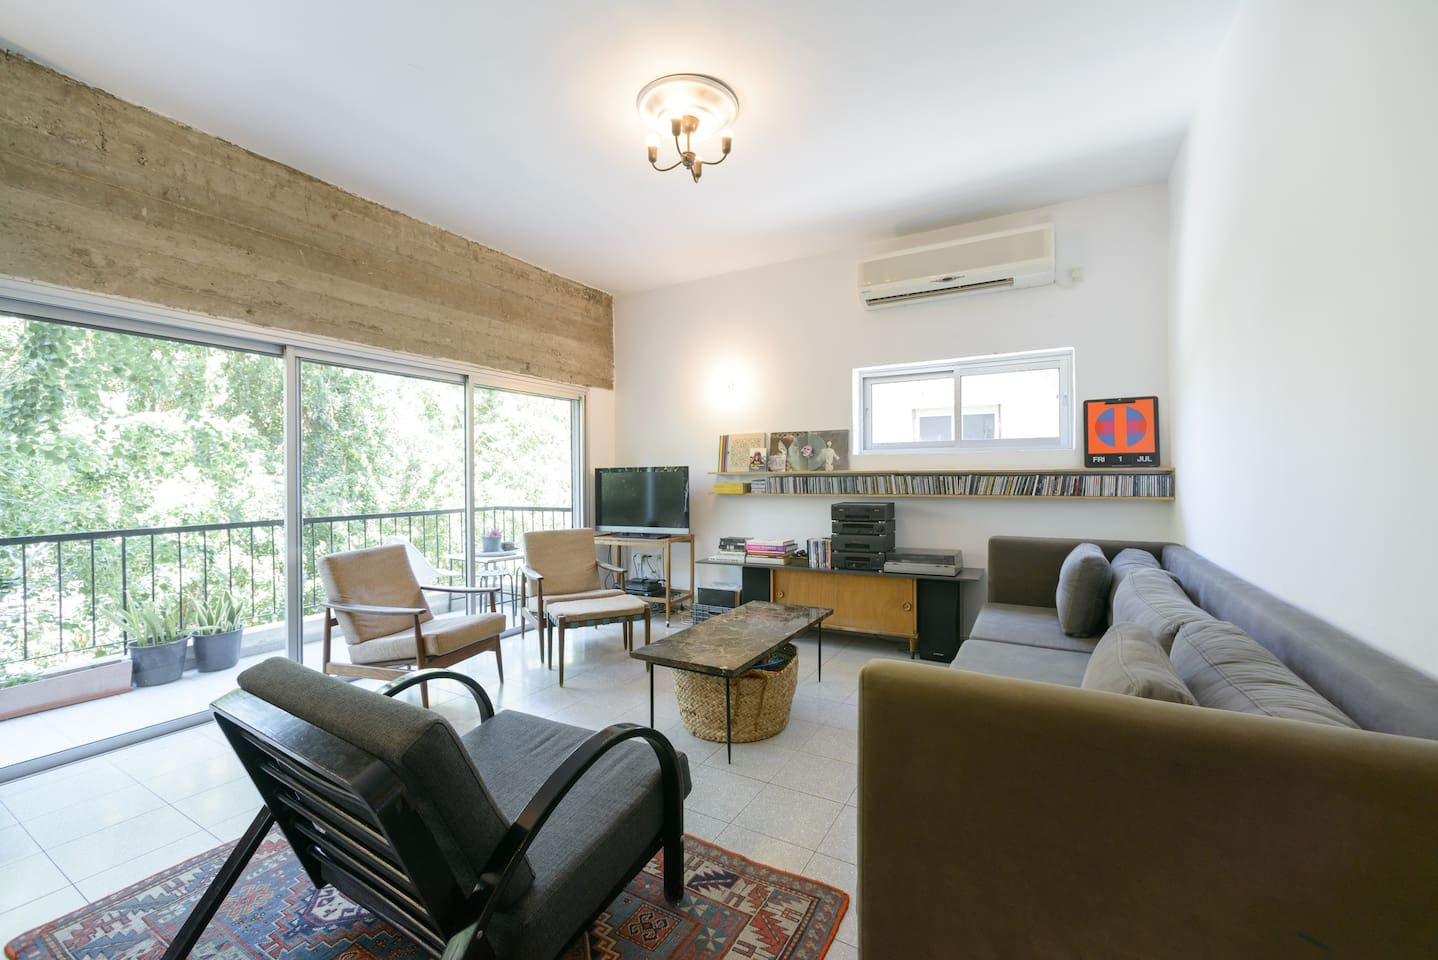 welcome to our sunny and handsome family apartment in central tel aviv ^_^ it is 90 m2, 2nd floor